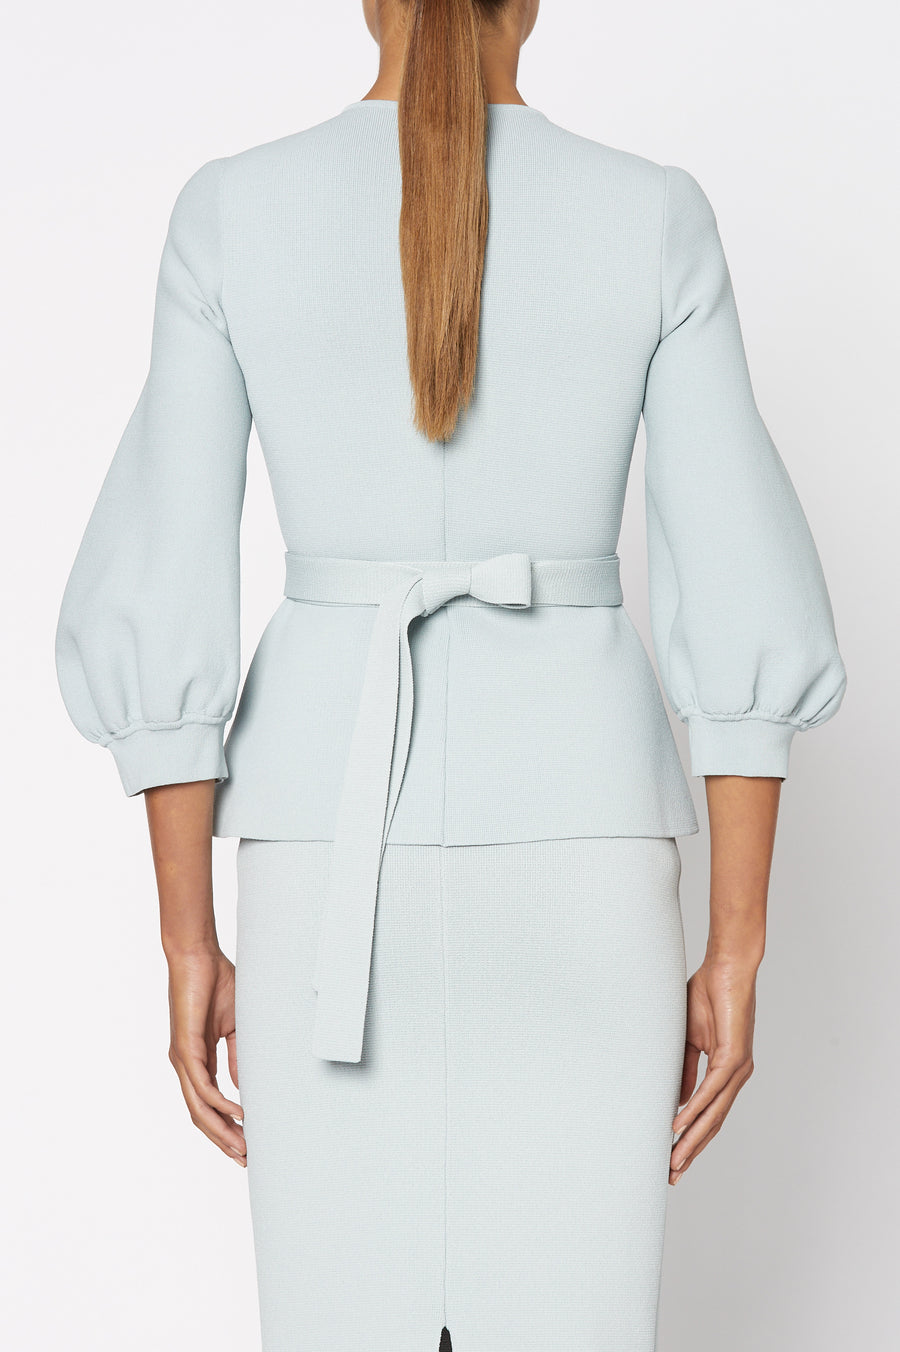 Crepe Knit Cocoon Sleeve Jacket, Tailored Zip Front, Peplum style with Waist Belt and Cocoon Sleeves. Color Blue Argento